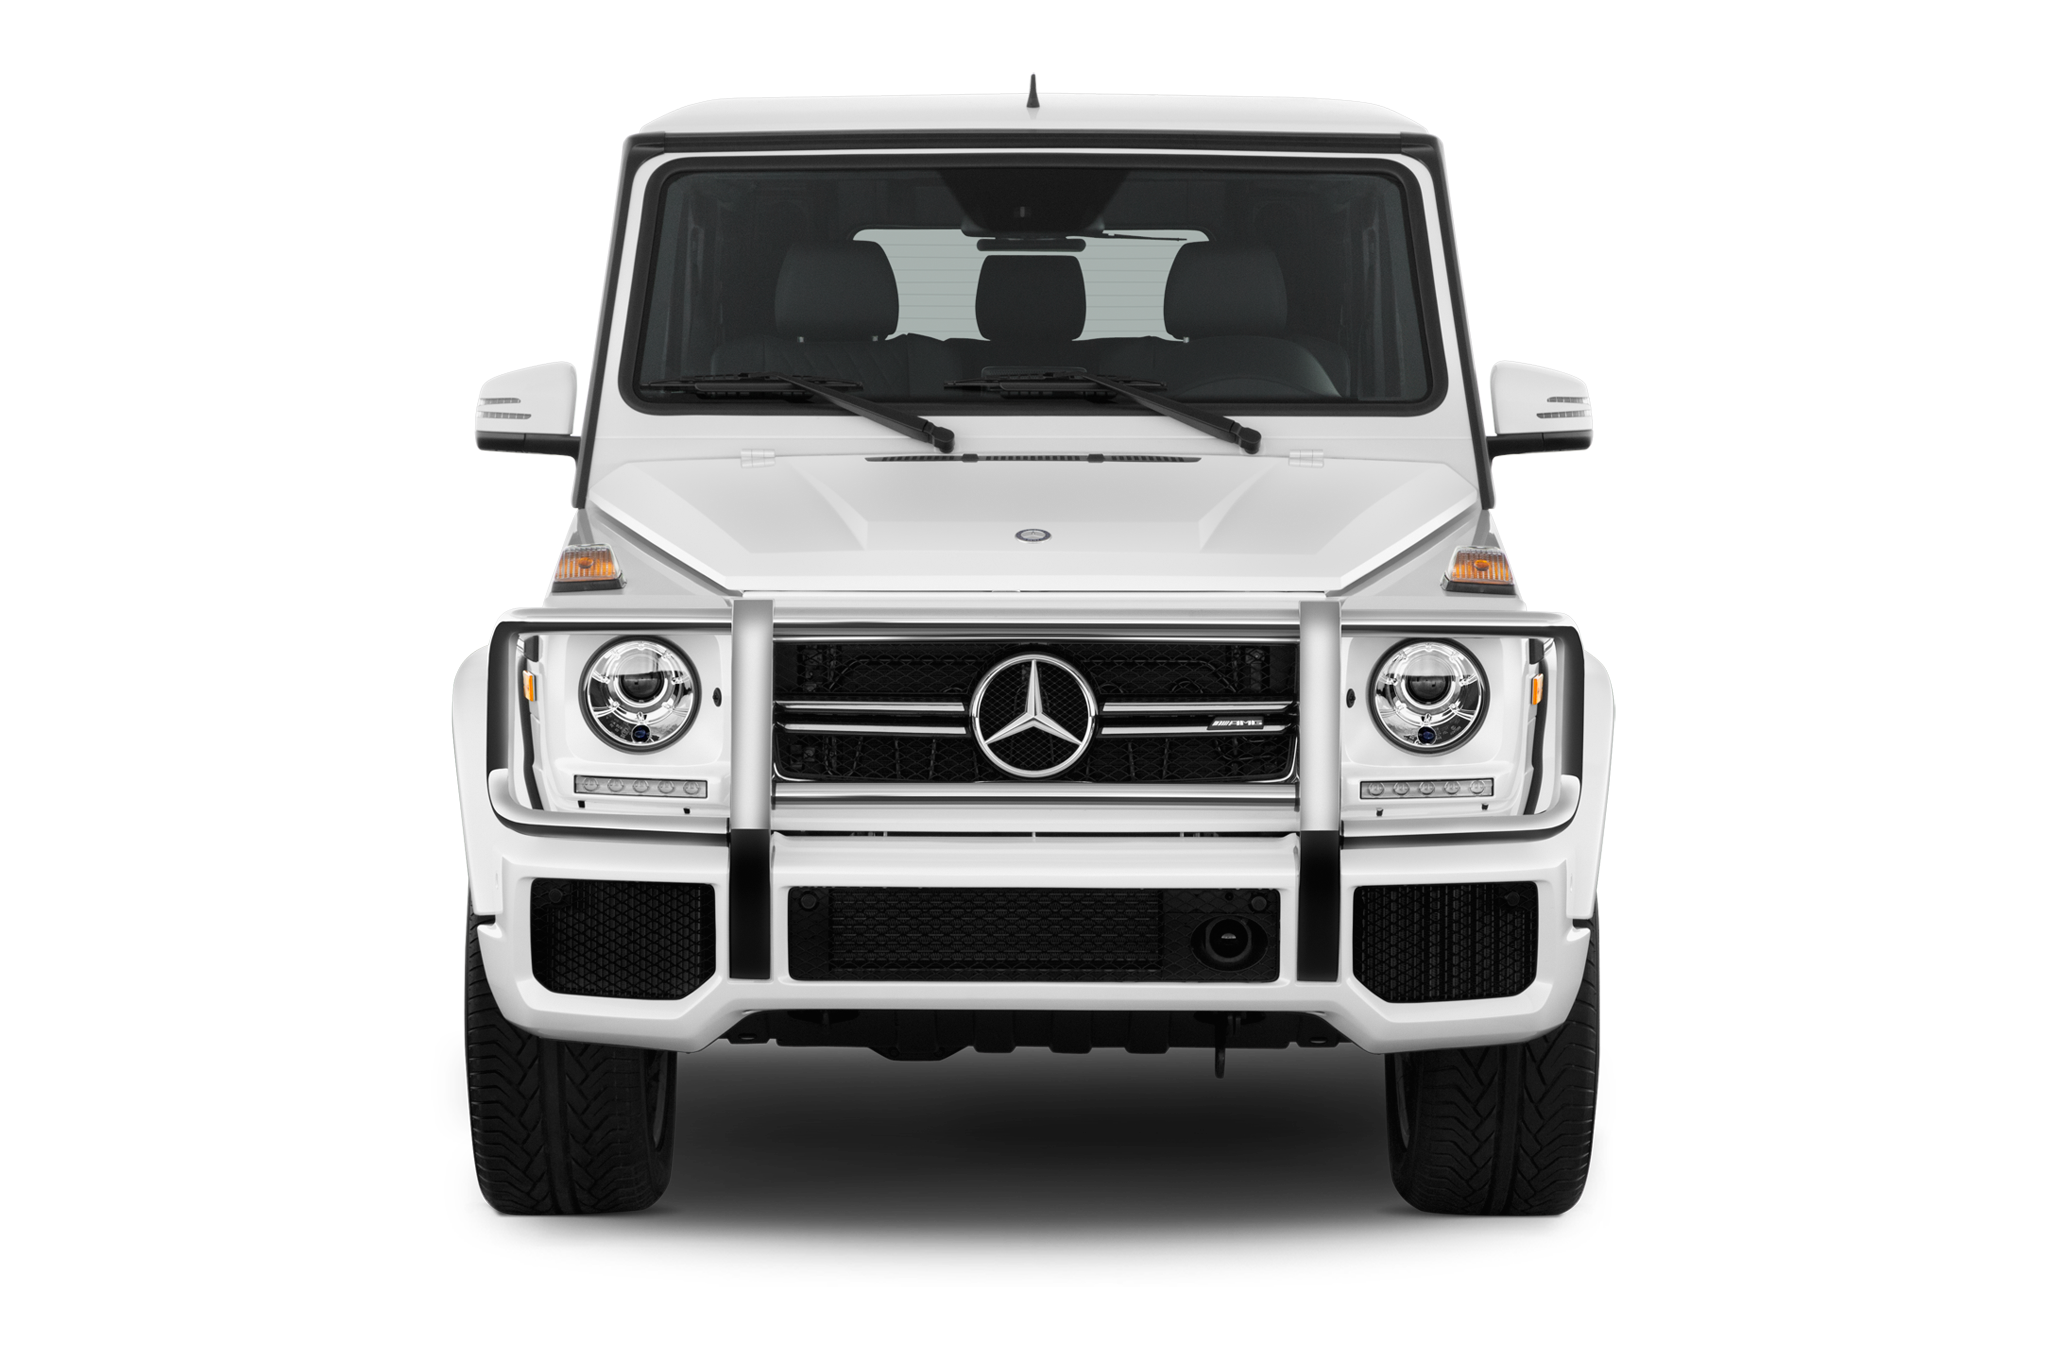 Mercedes benz g63 amg suv price galleria di automobili for Mercedes benz suv g class price